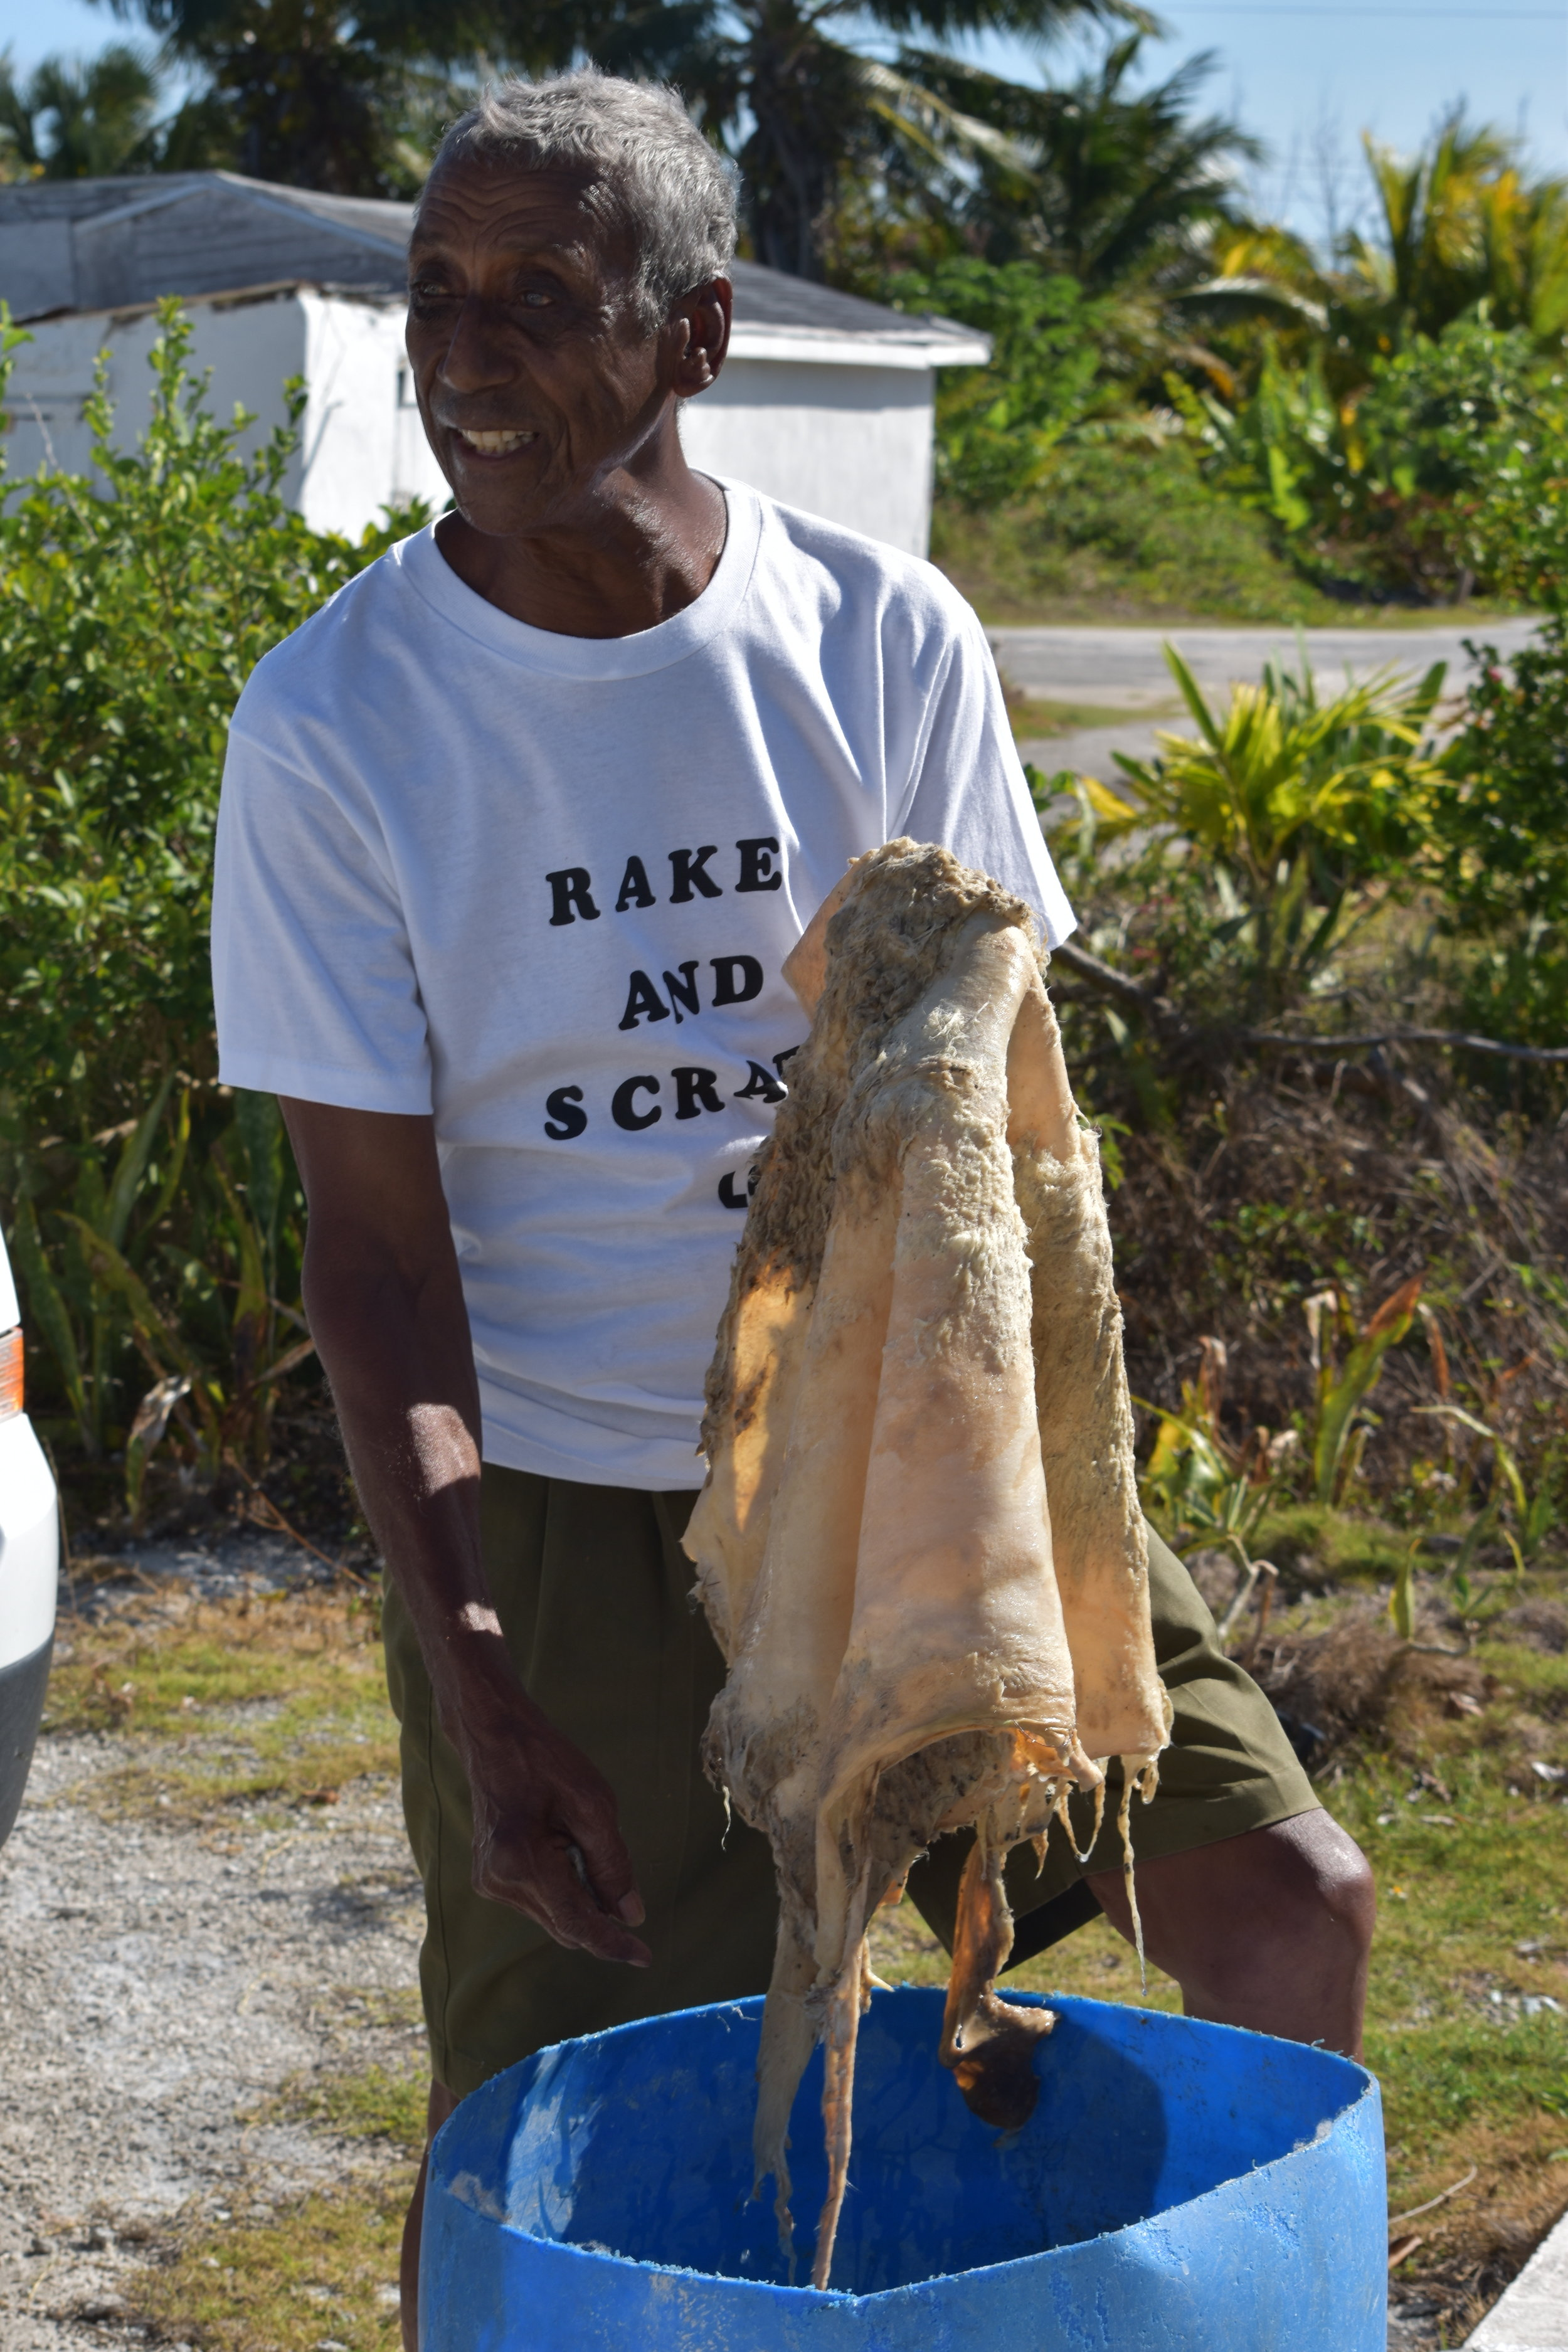 Rake 'n' Scrape master, Orlando Turnquest, demonstrating how to clean a goat skin in lime and water in Long Island.